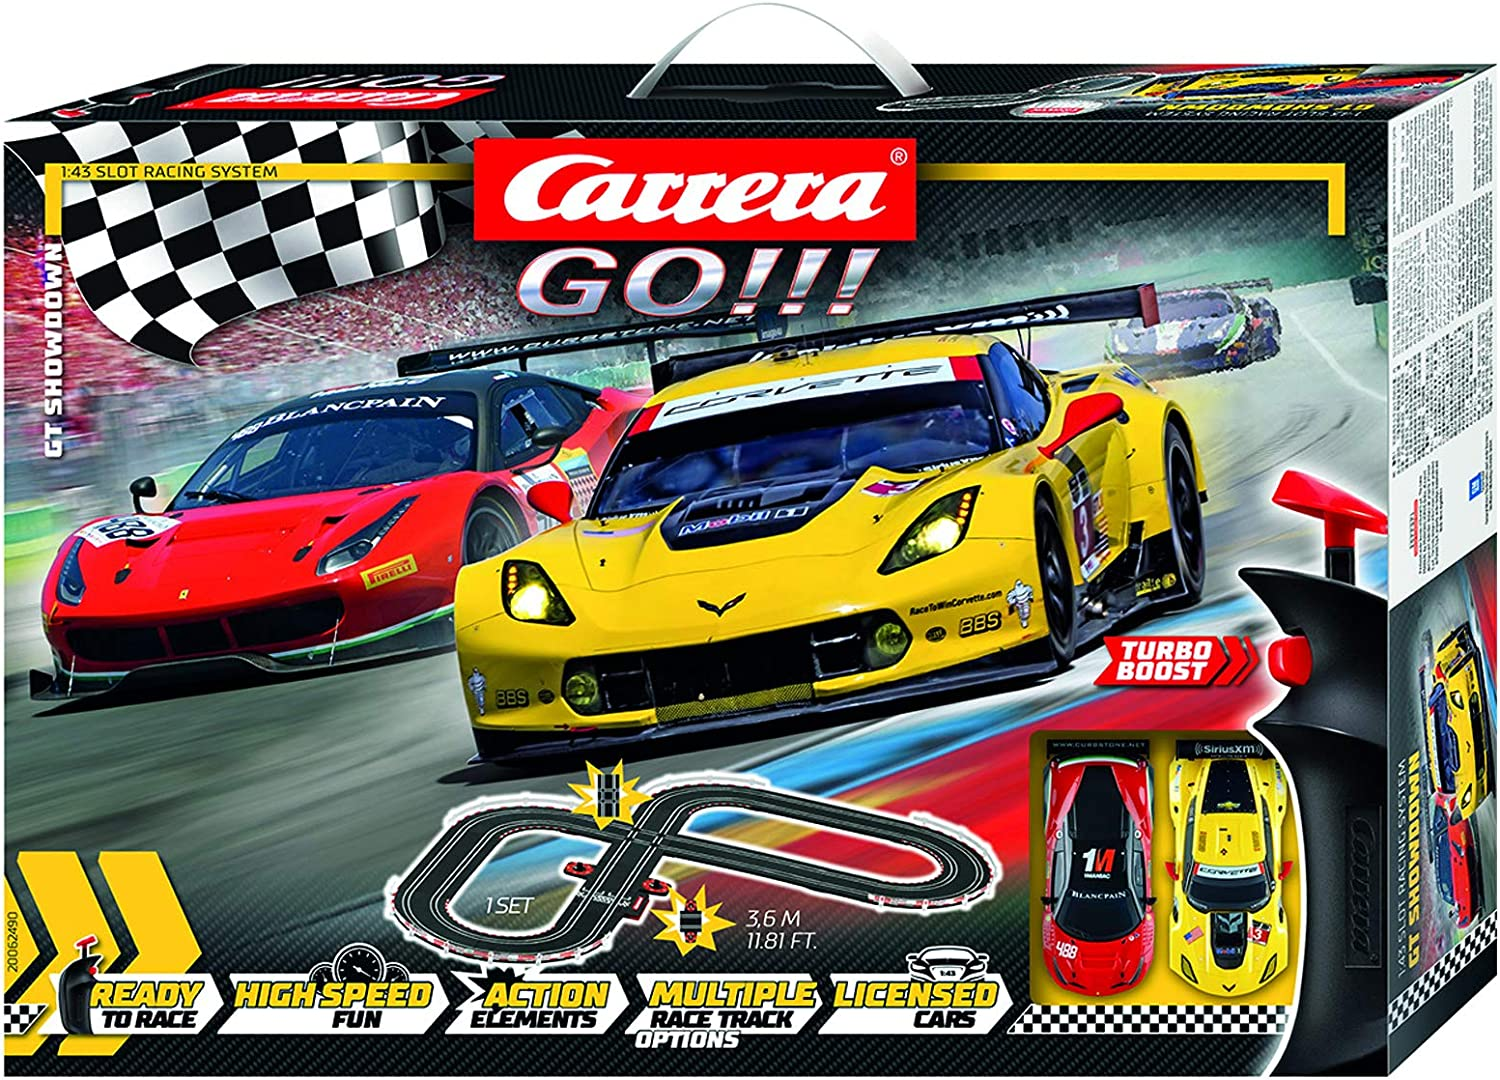 Carrera Go 62490 Gt Showdown Electric Slot Car Racing Track Set 1 43 Scale Slot Cars Amazon Canada